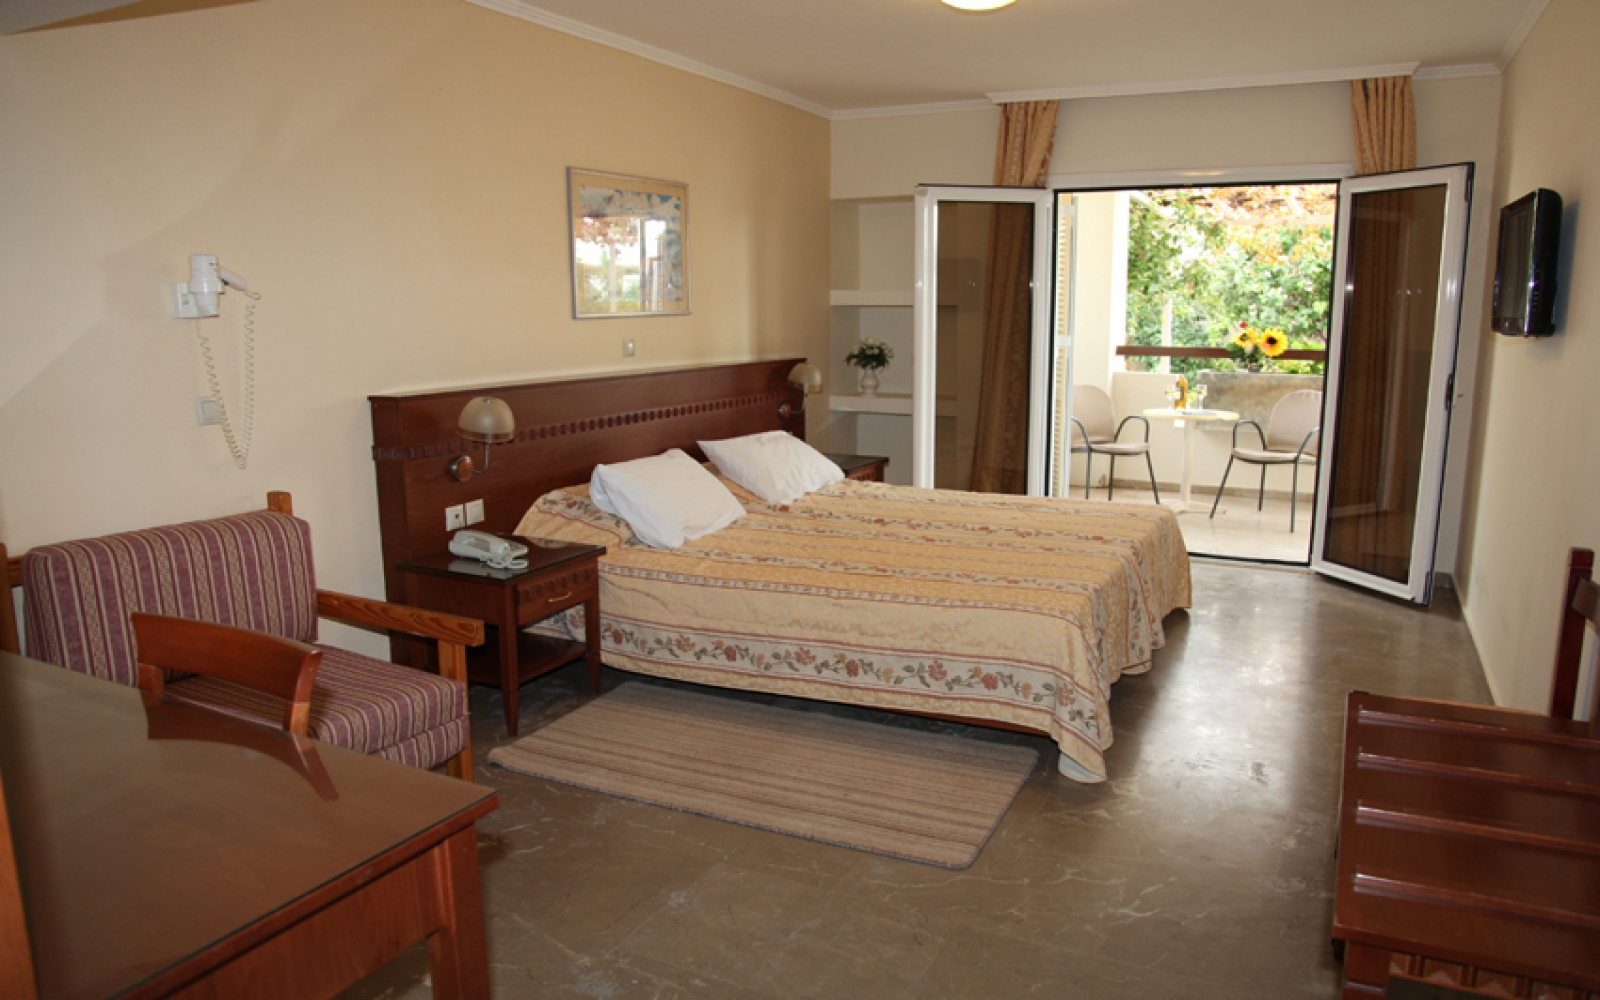 Double Room for Persons with Special Needs